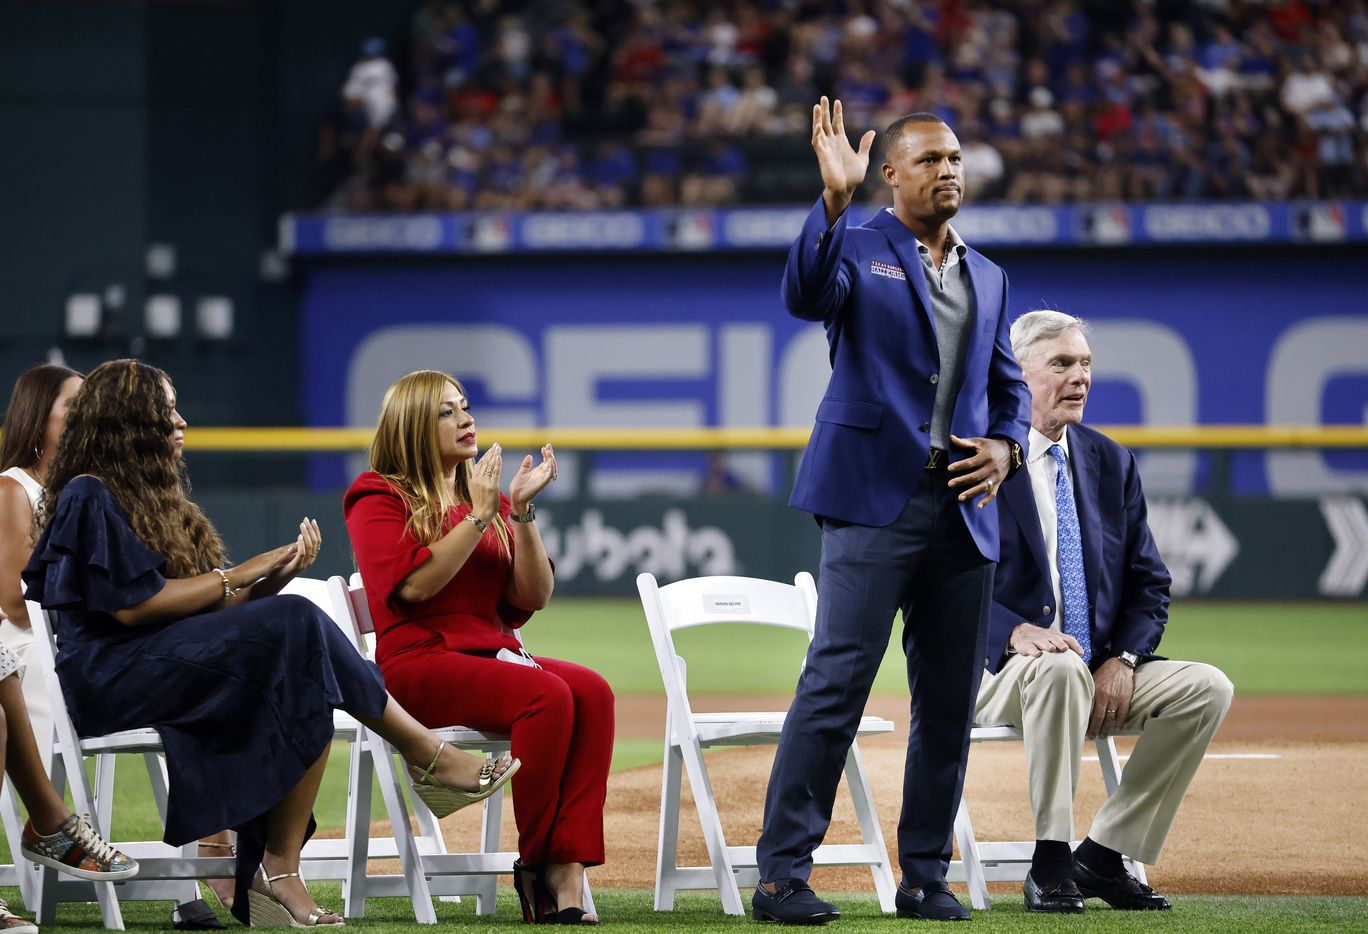 Former Texas Rangers third baseman Adrian Beltre (left) waves to fans after his Texas Rangers Baseball Hall of Fame induction speech at Globe Life Field in Arlington, Saturday, August 14, 2021. Executive vice president and public address announcer Chuck Morgan was also inducted. (Tom Fox/The Dallas Morning News)